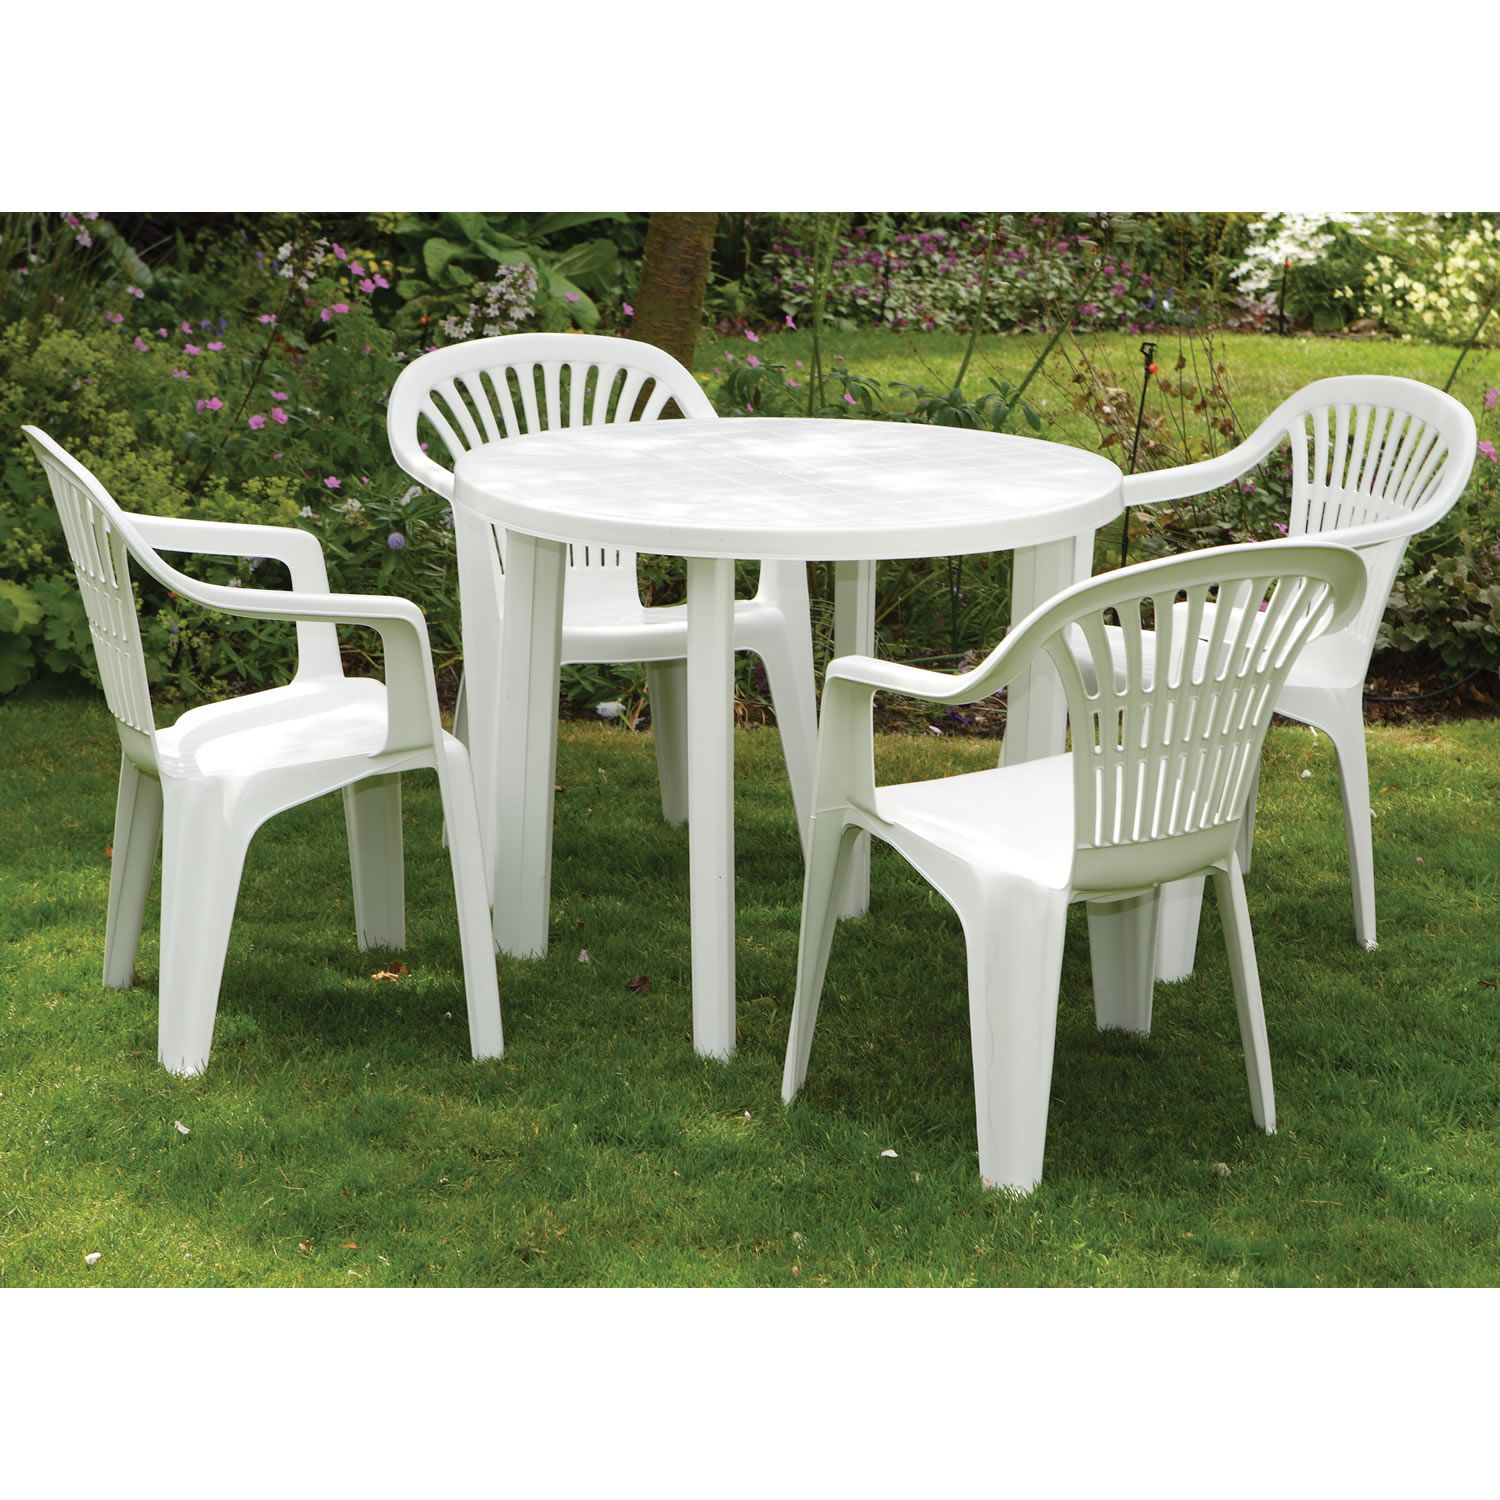 chairs plastic outdoor furniture